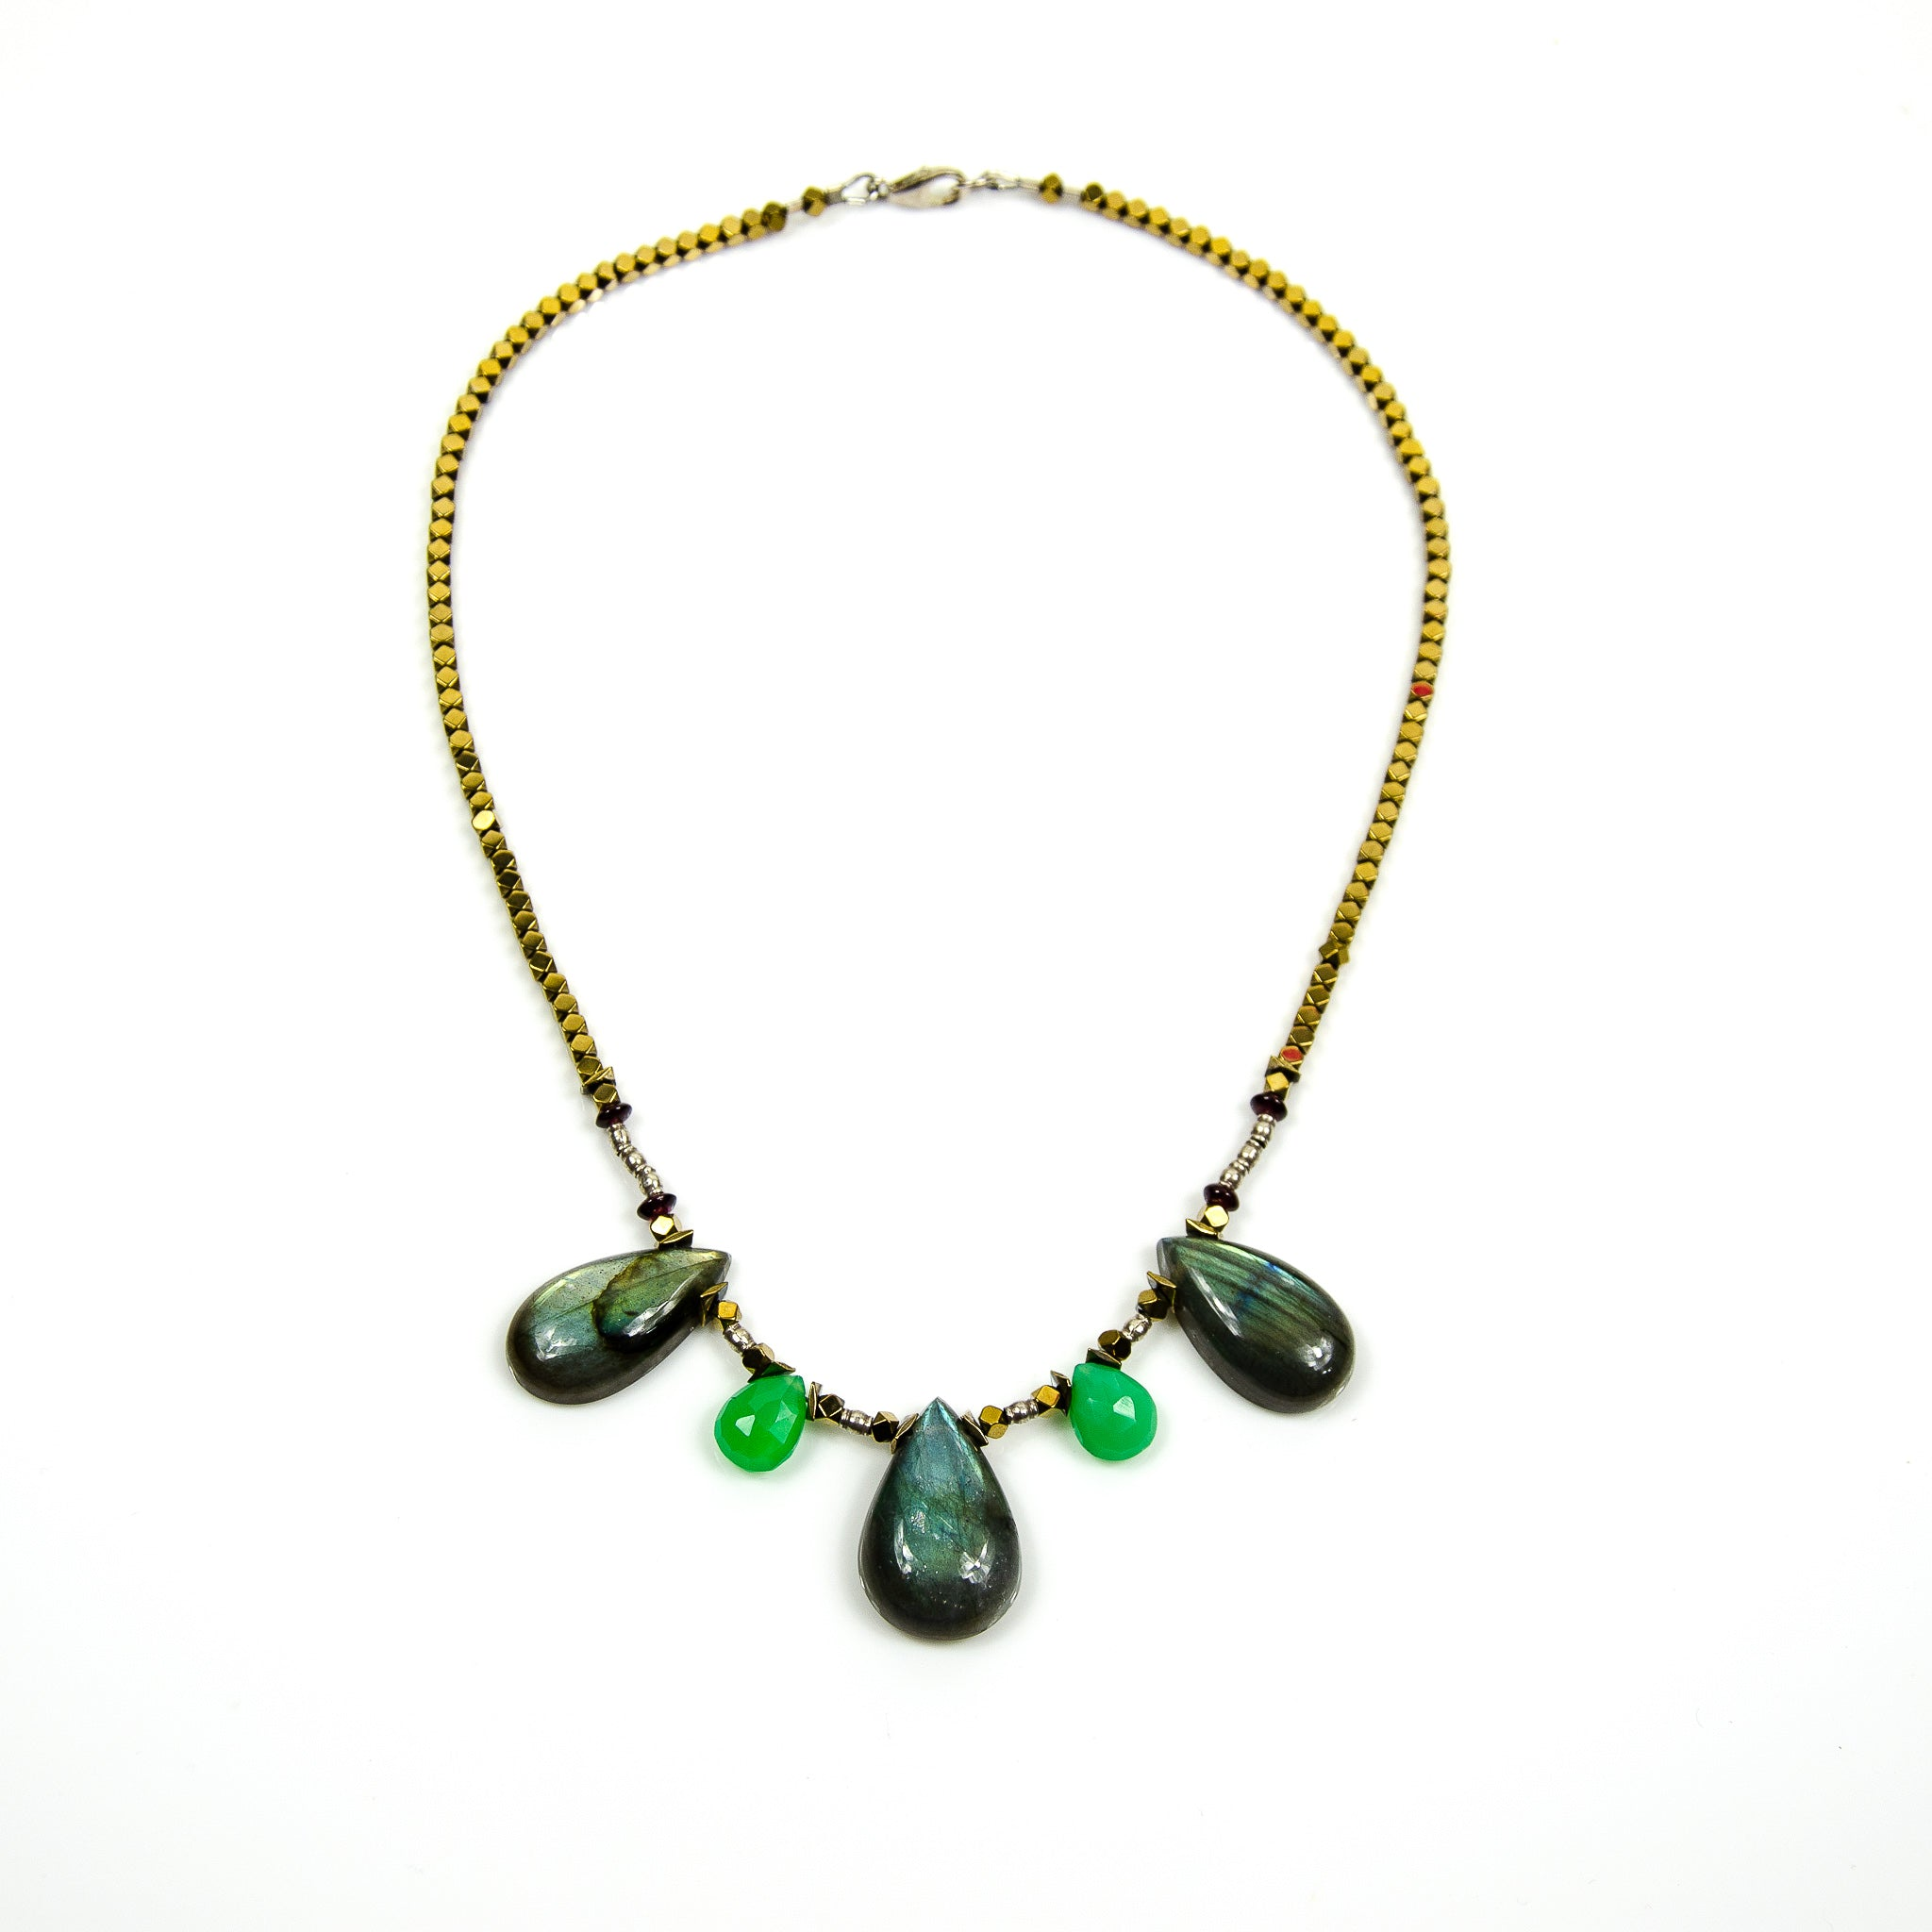 Teardrop - Labradorite and Chrysoprase